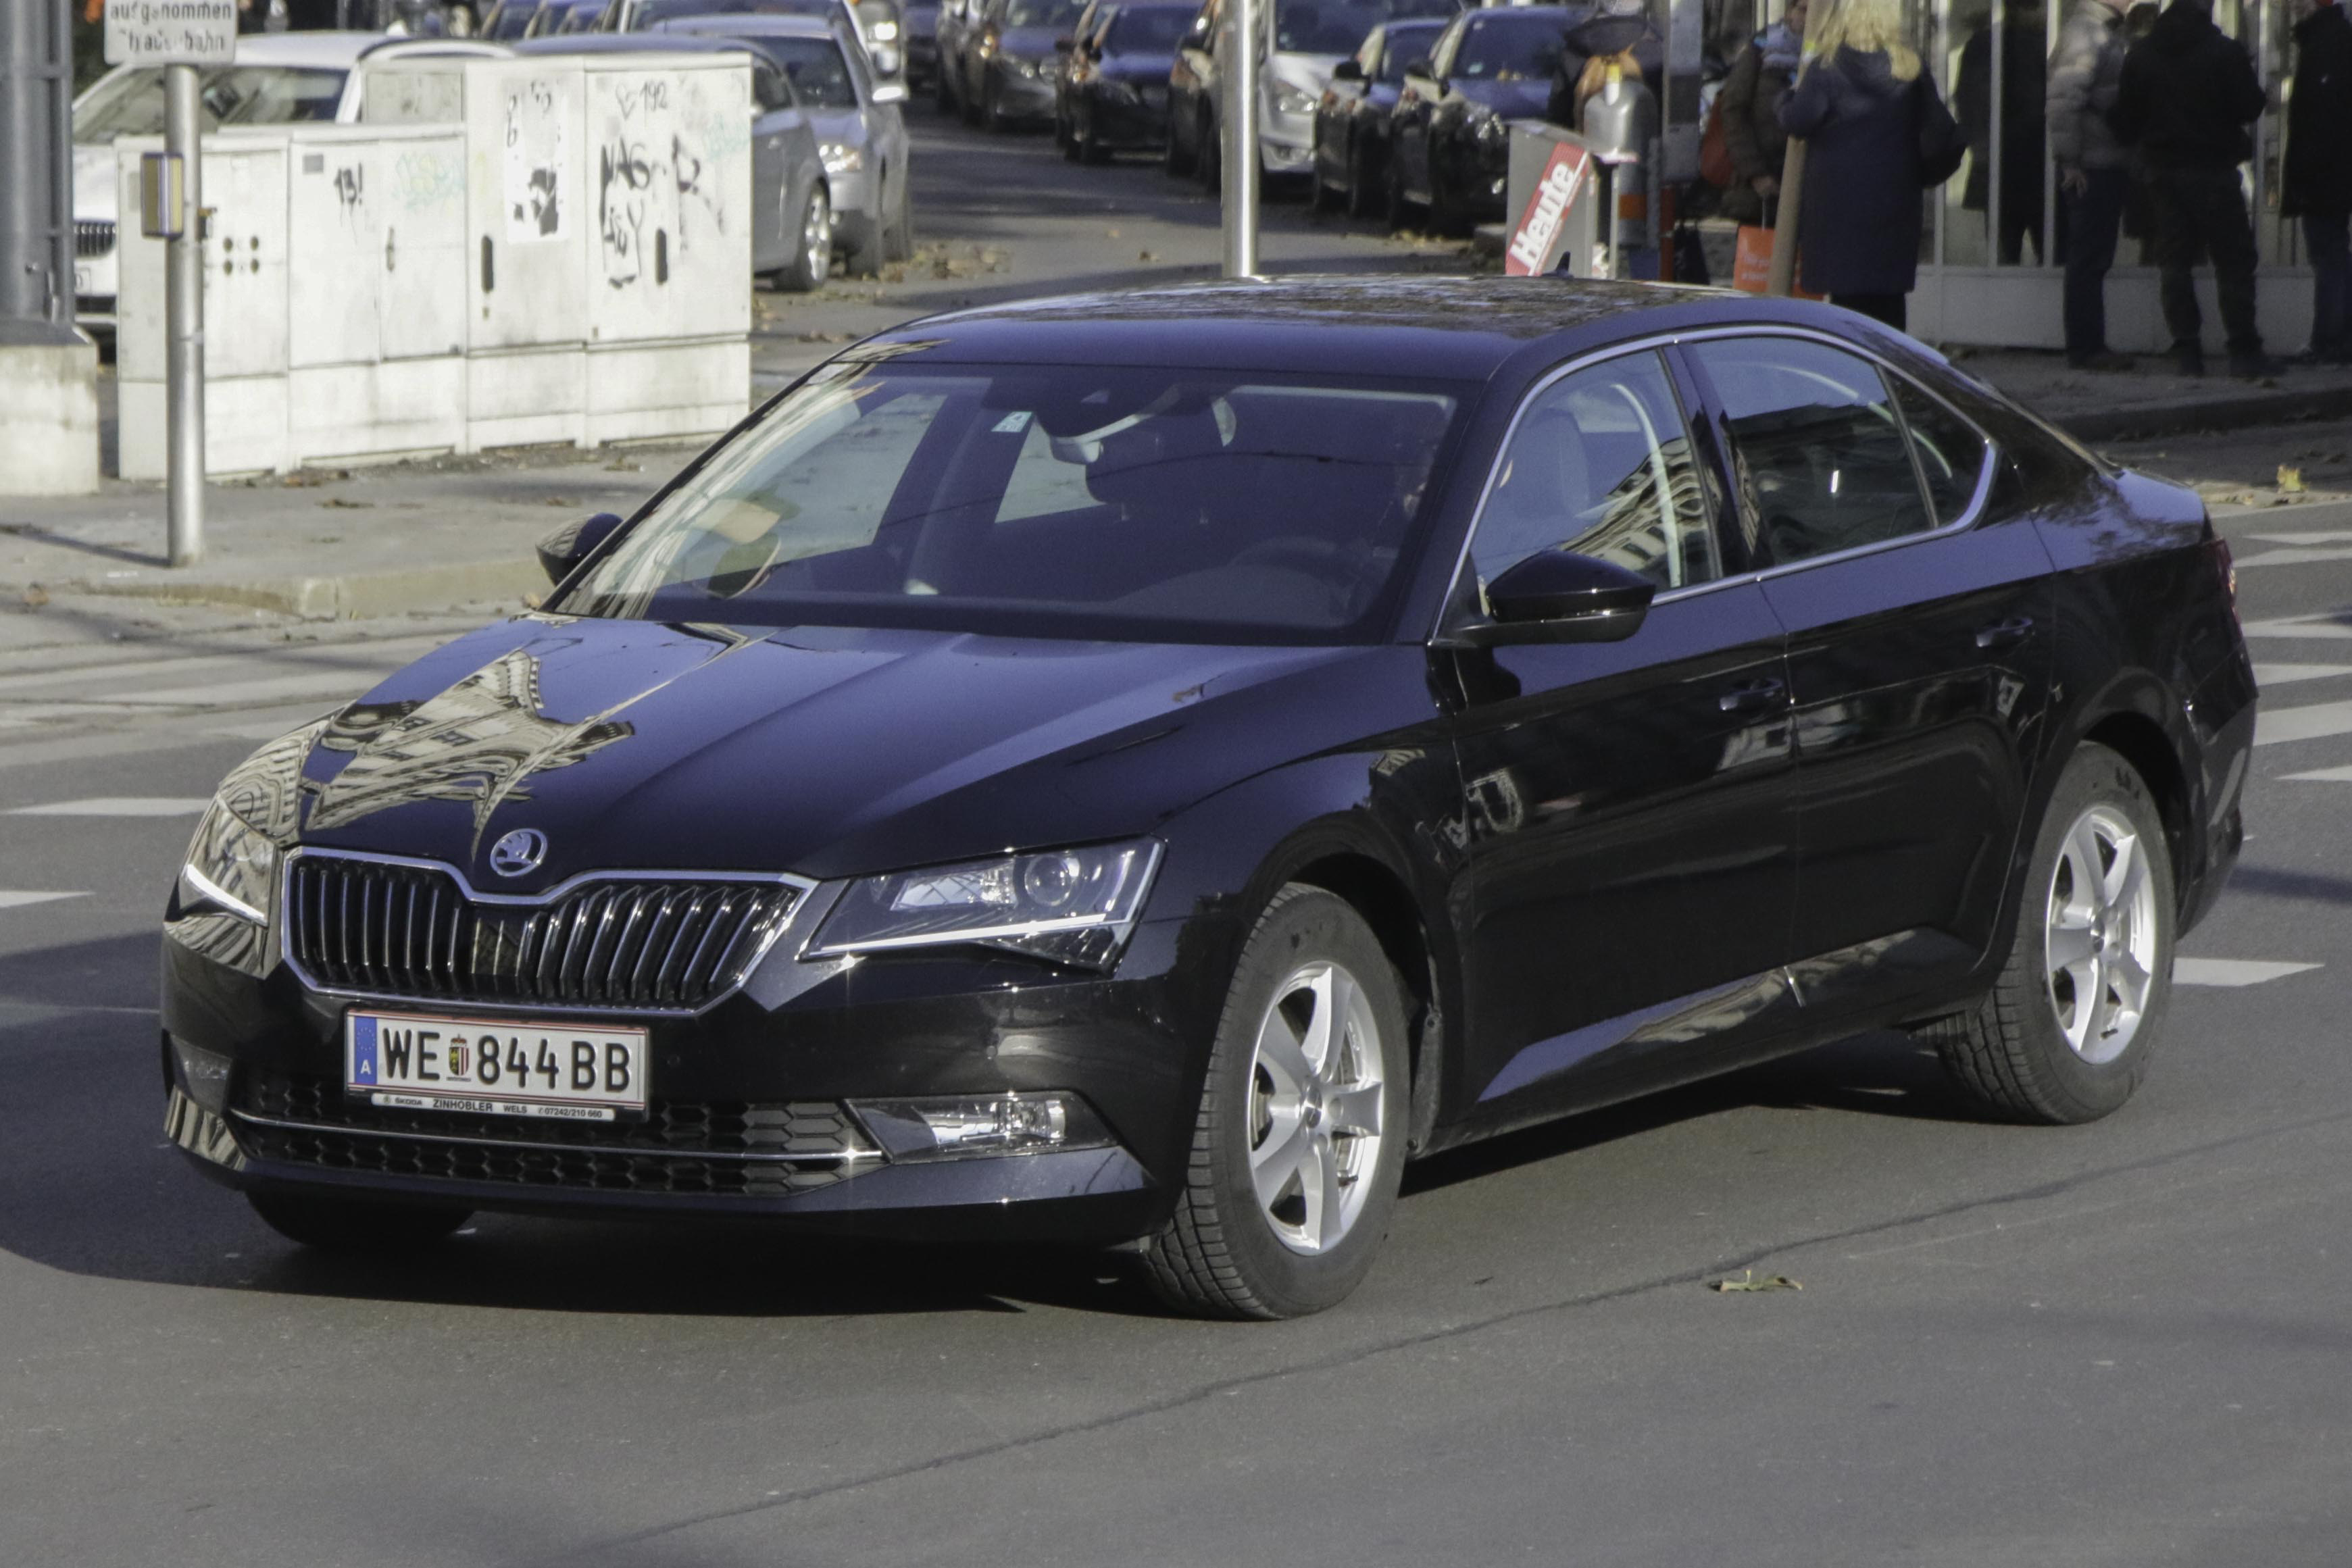 Škoda Superb - Wikipedia